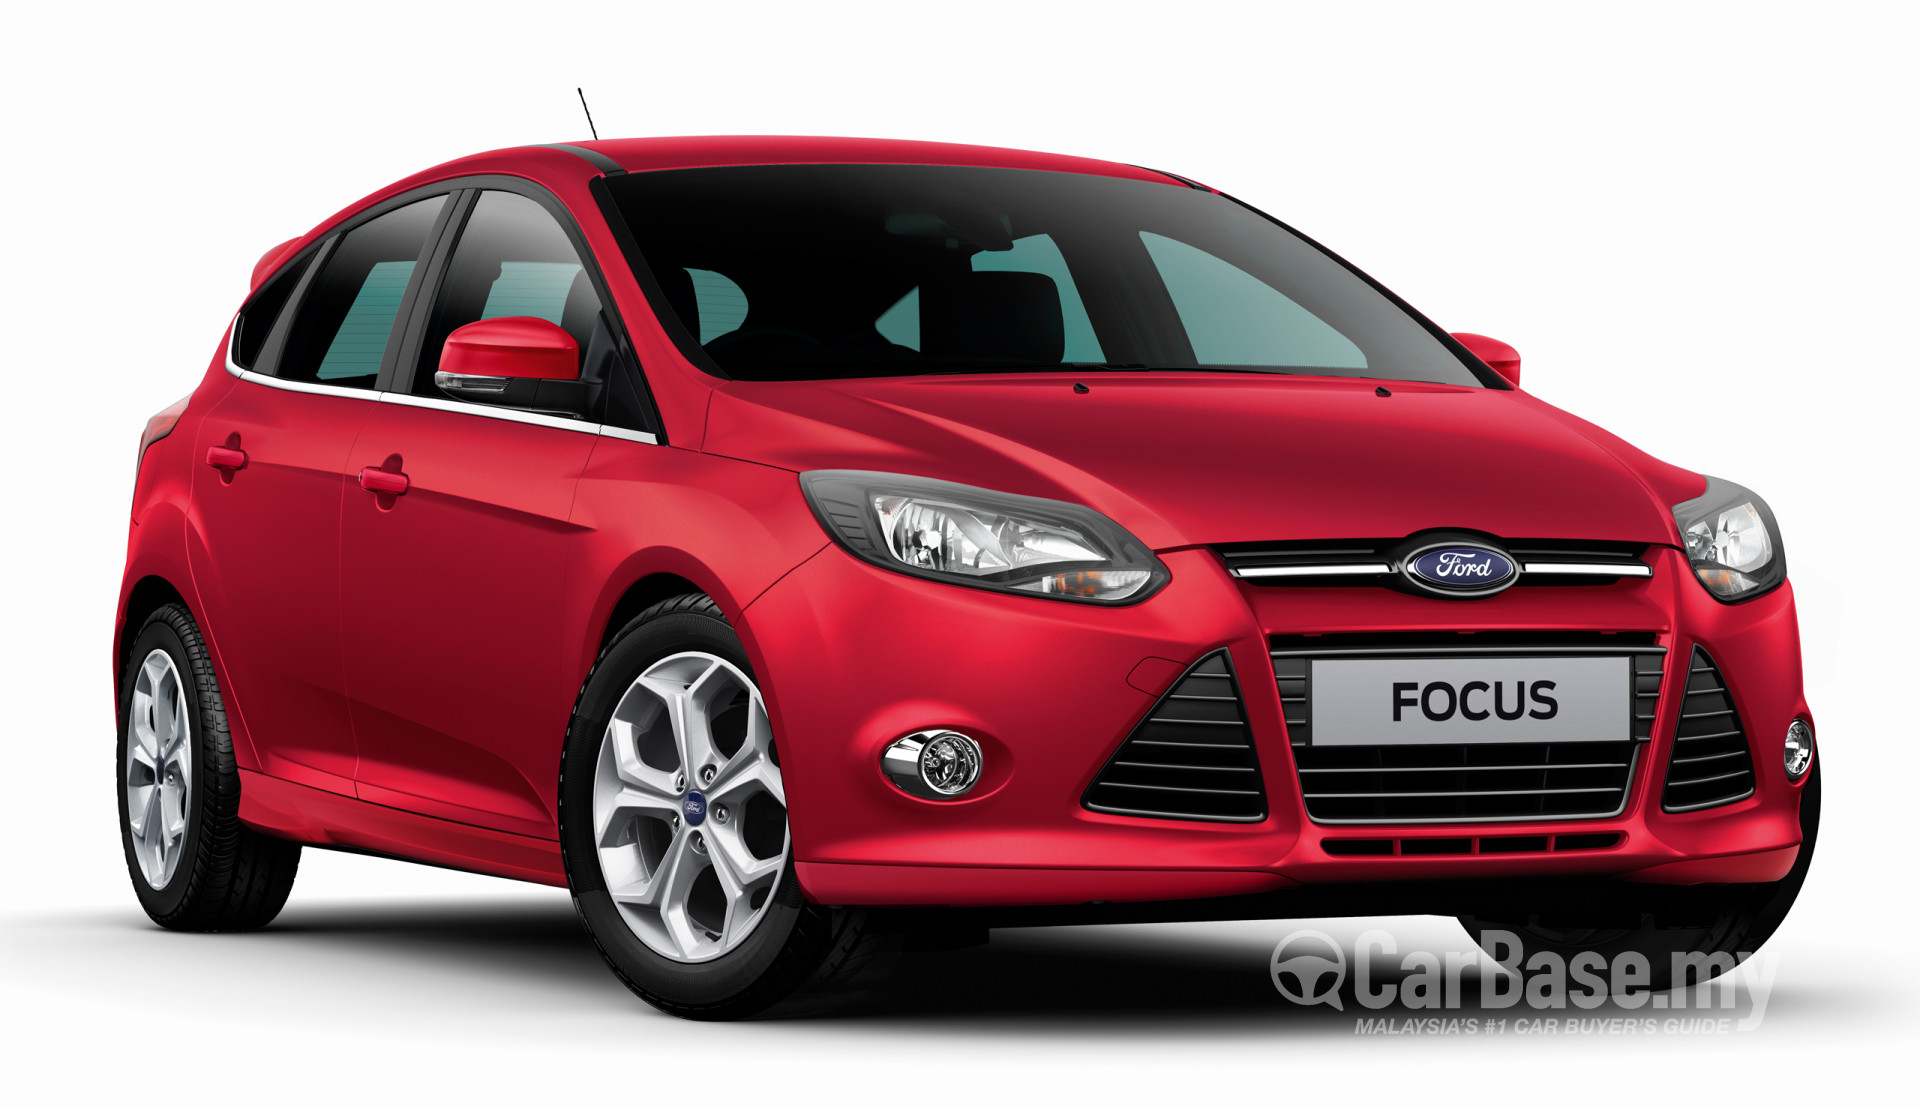 Ford Focus Mk3 C346 2012 Exterior Image In Malaysia Reviews Specs Prices